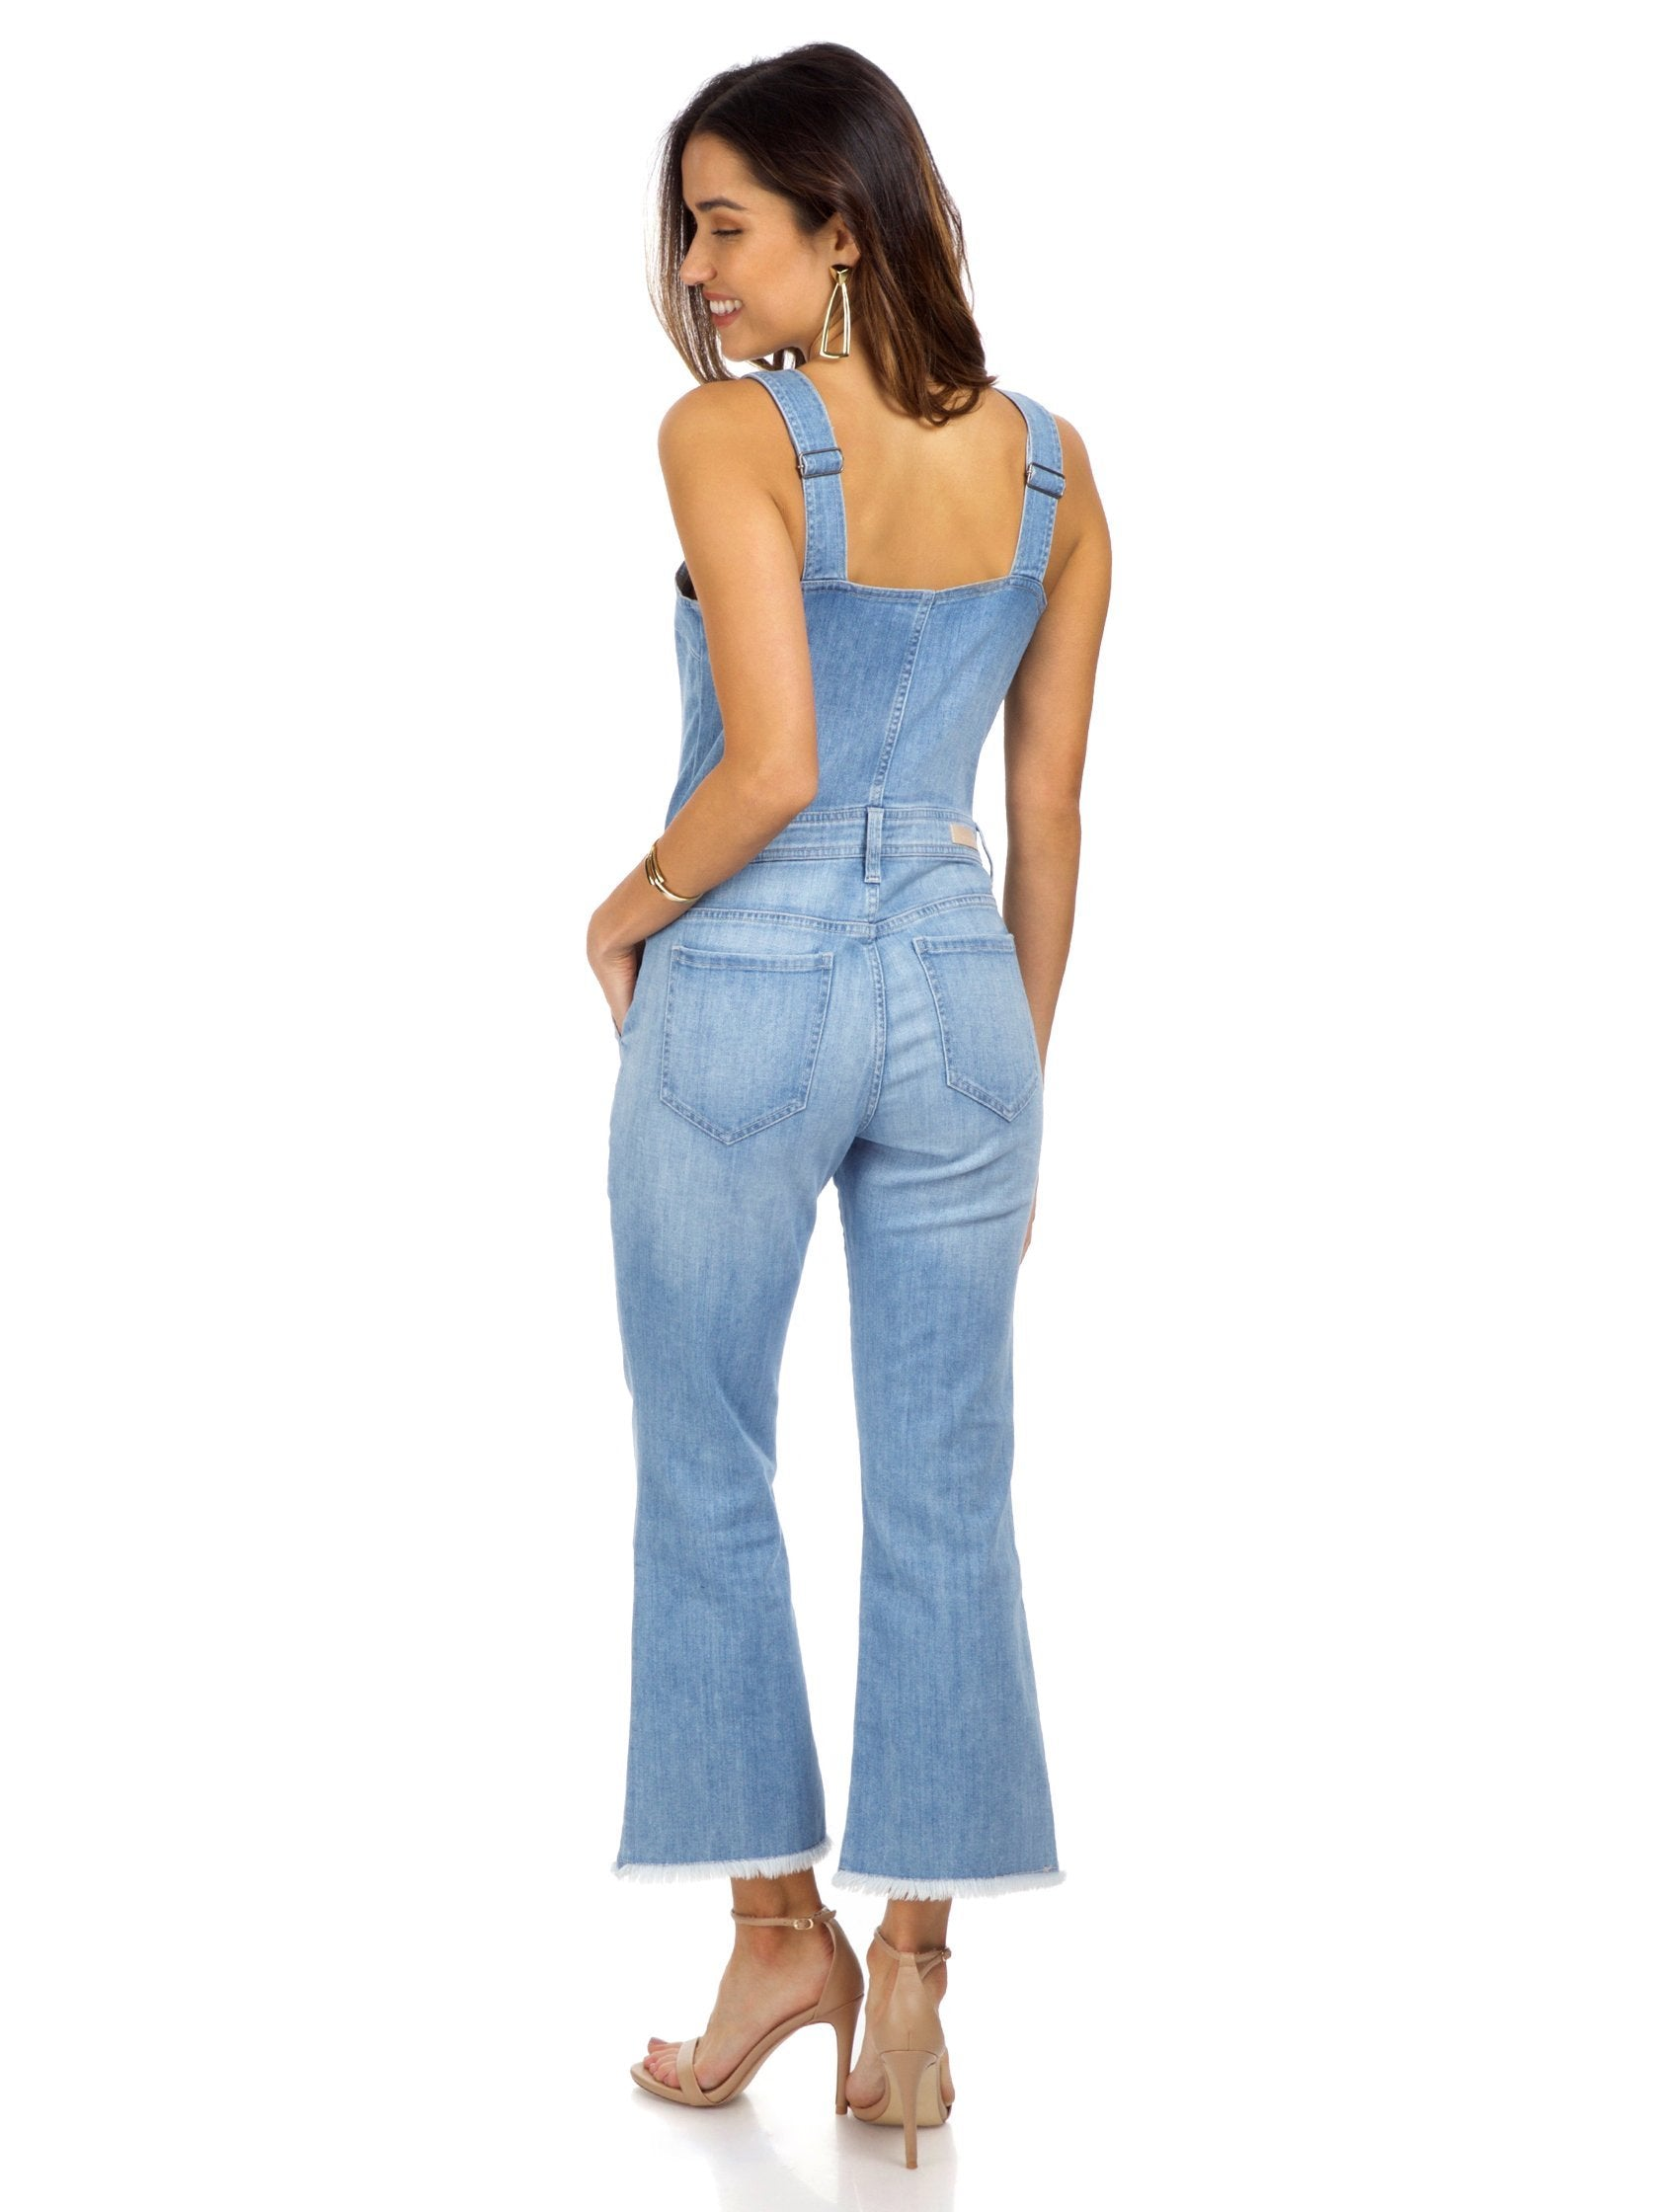 Women wearing a jumpsuit rental from ei8ht dreams called Flare Overall